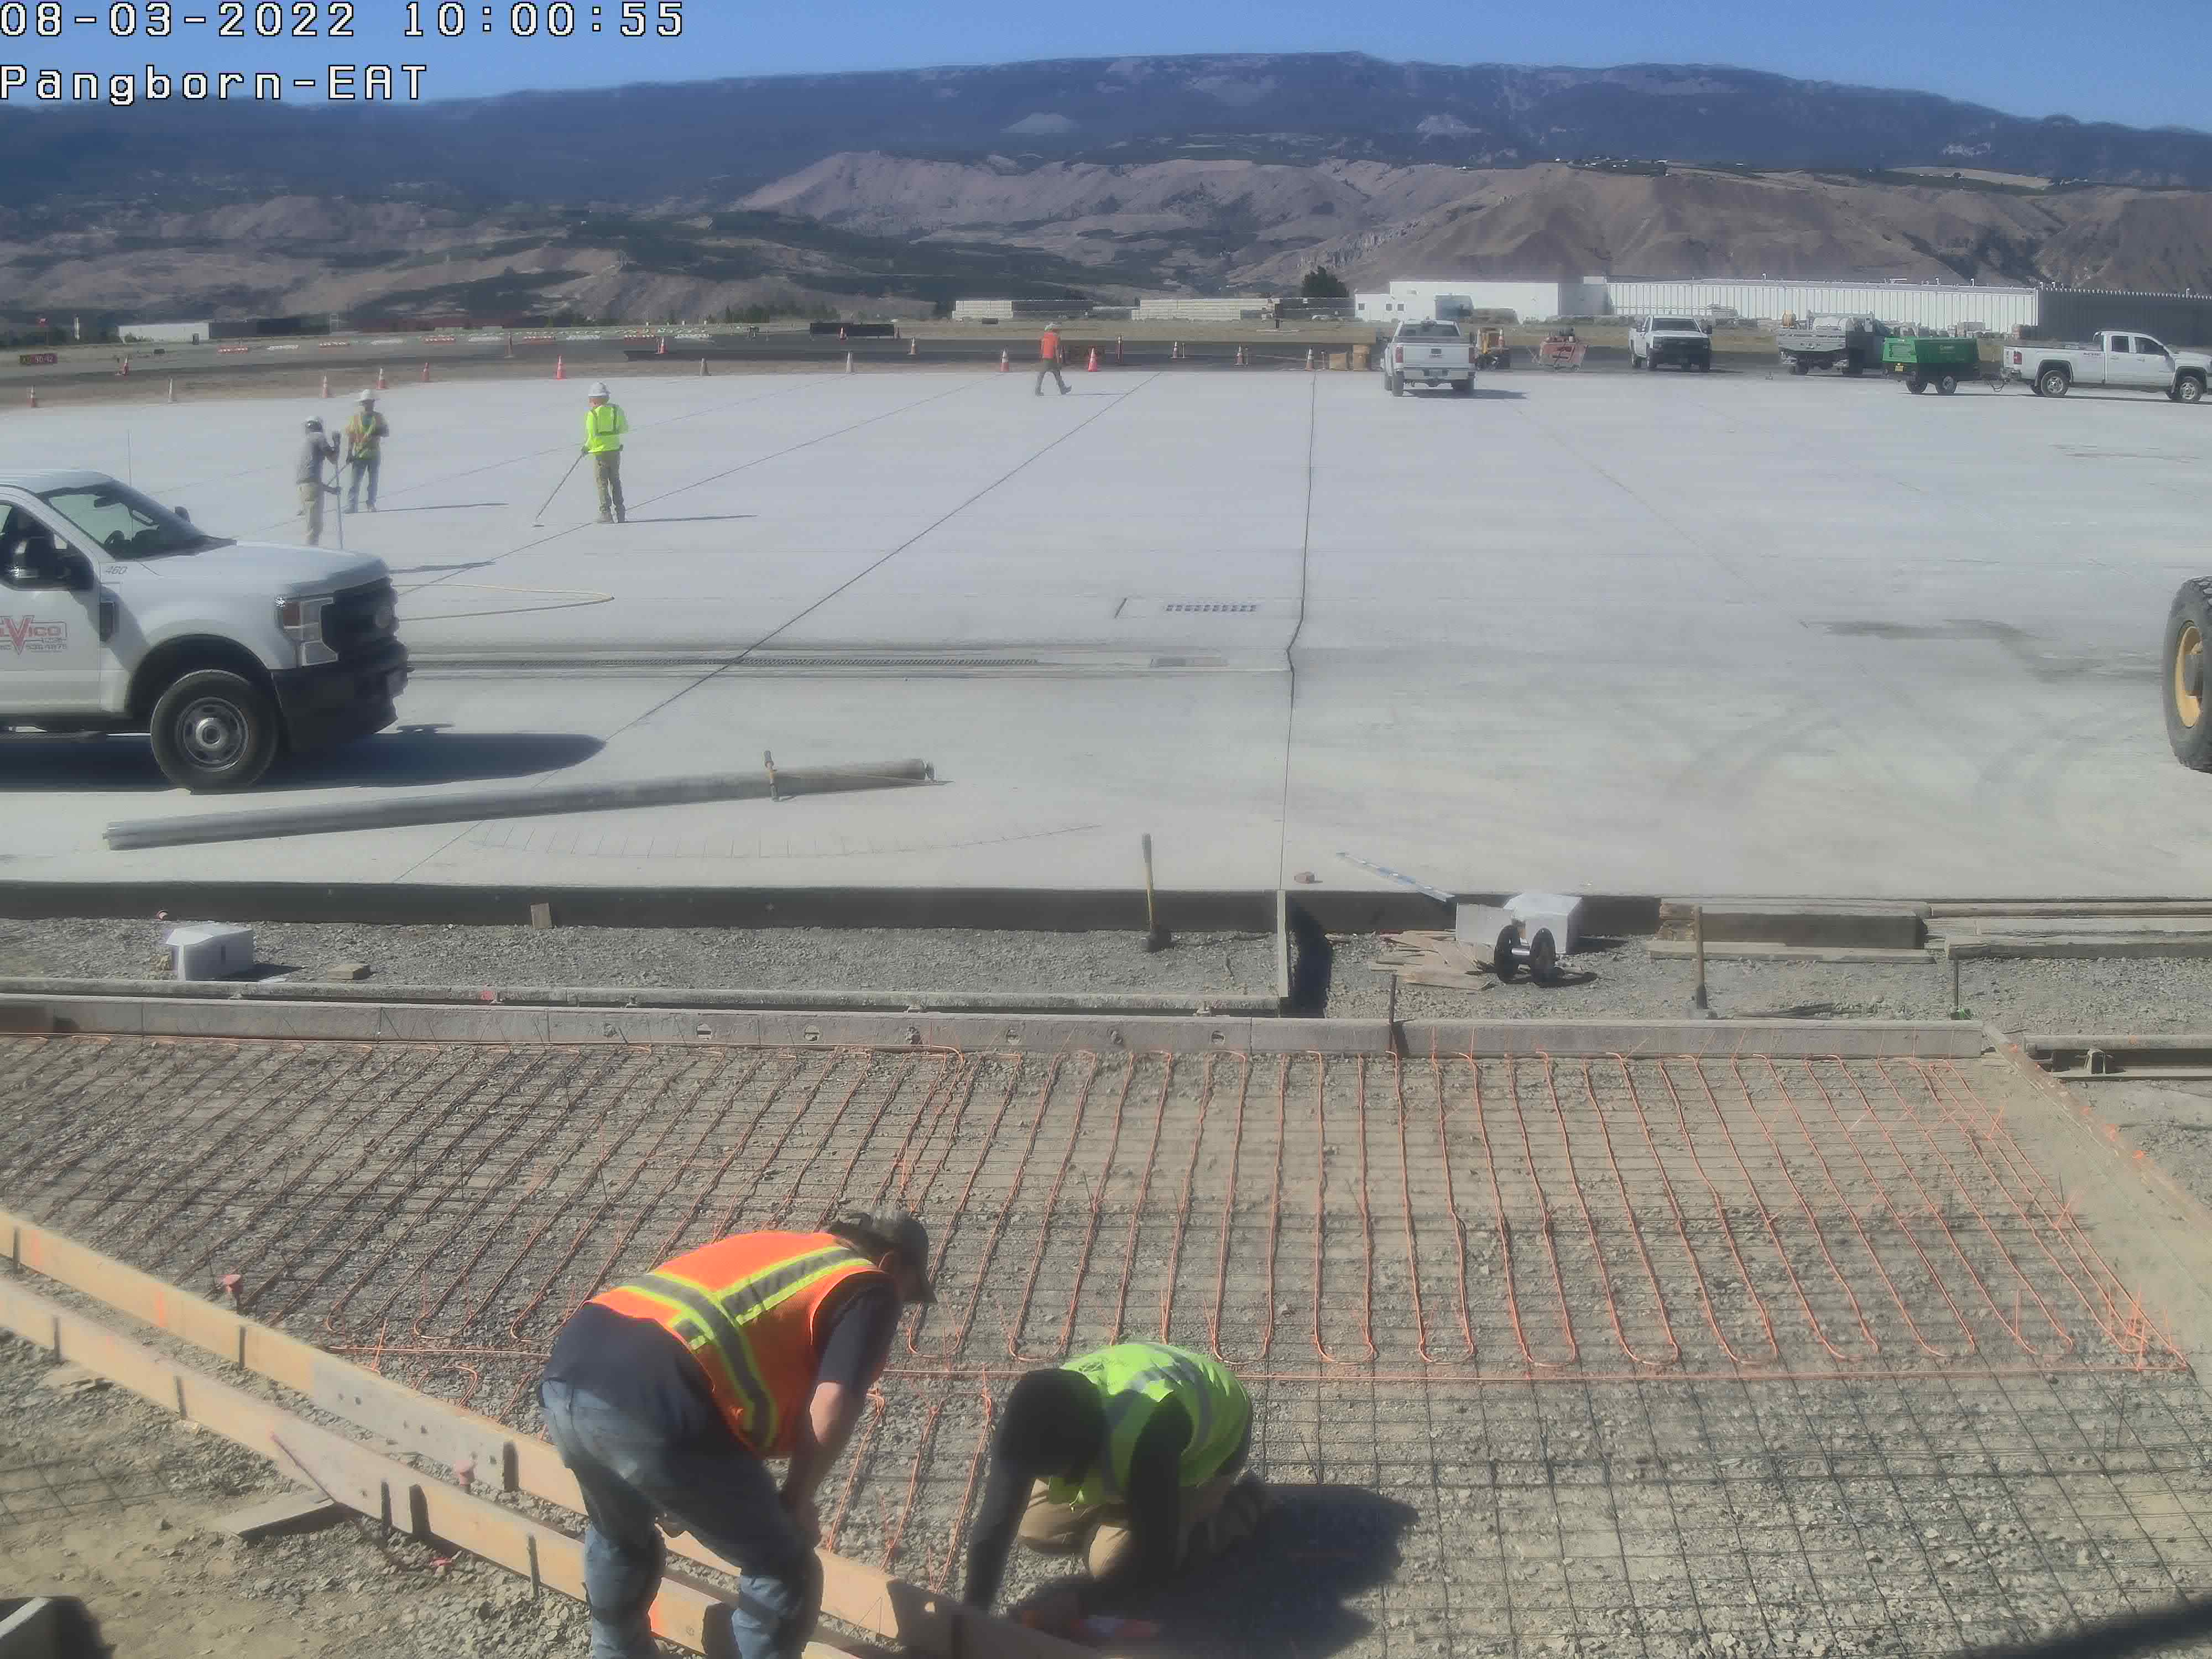 Pangborn Memorial Airport Webcam